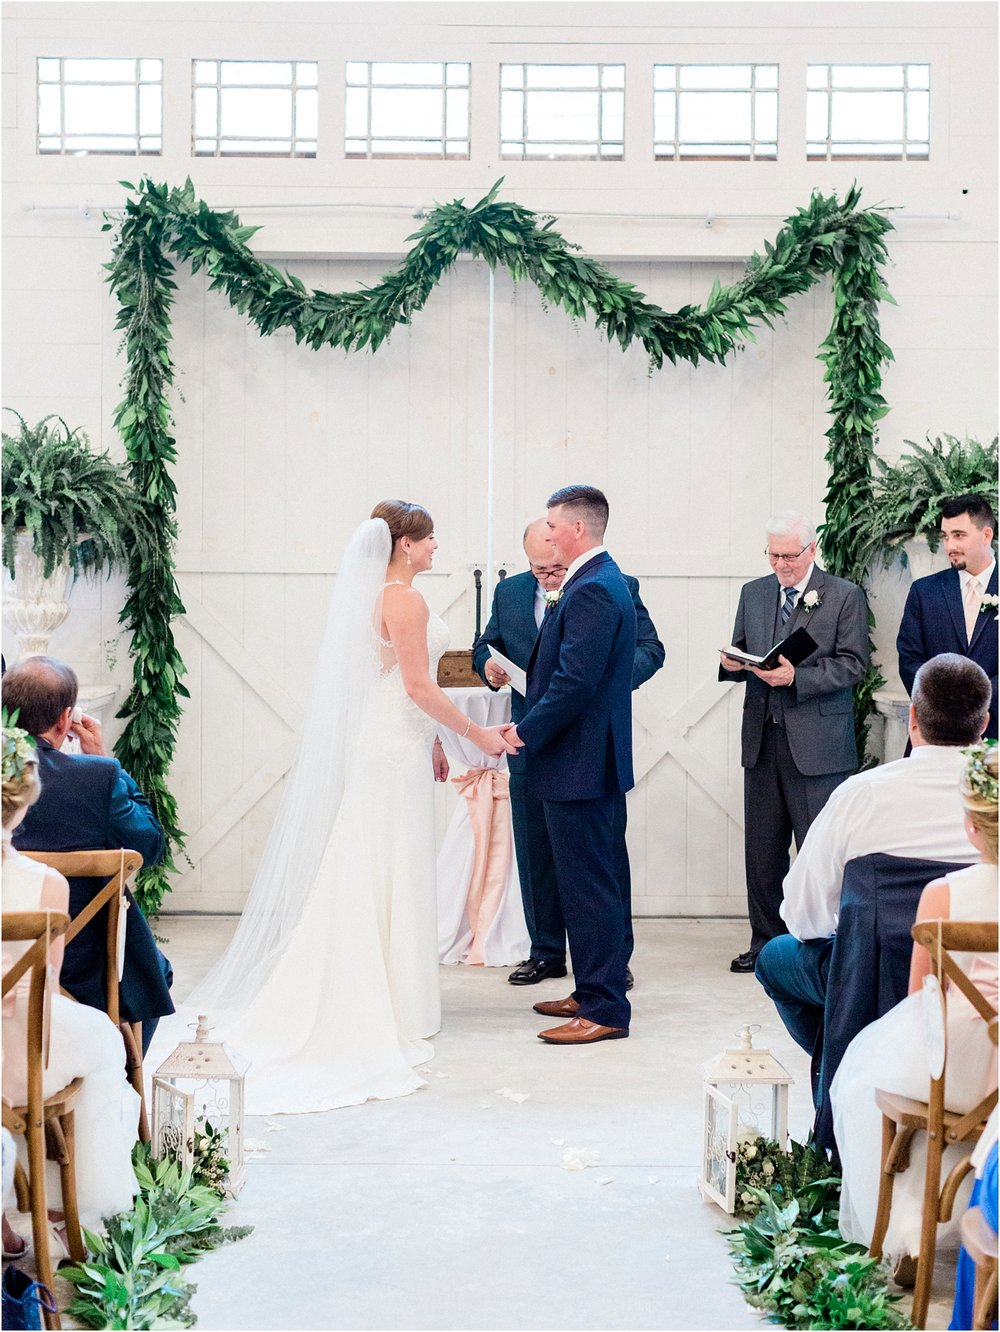 Lisa Silva Photography- Ponte Vedra Beach, St. Augustine and Jacksonville, Florida Fine Art Film Wedding and Boudoir Photography- Elegant Blush and Navy Wedding at Chandler Oaks Barn in St. Augustine, Florida_0067.jpg